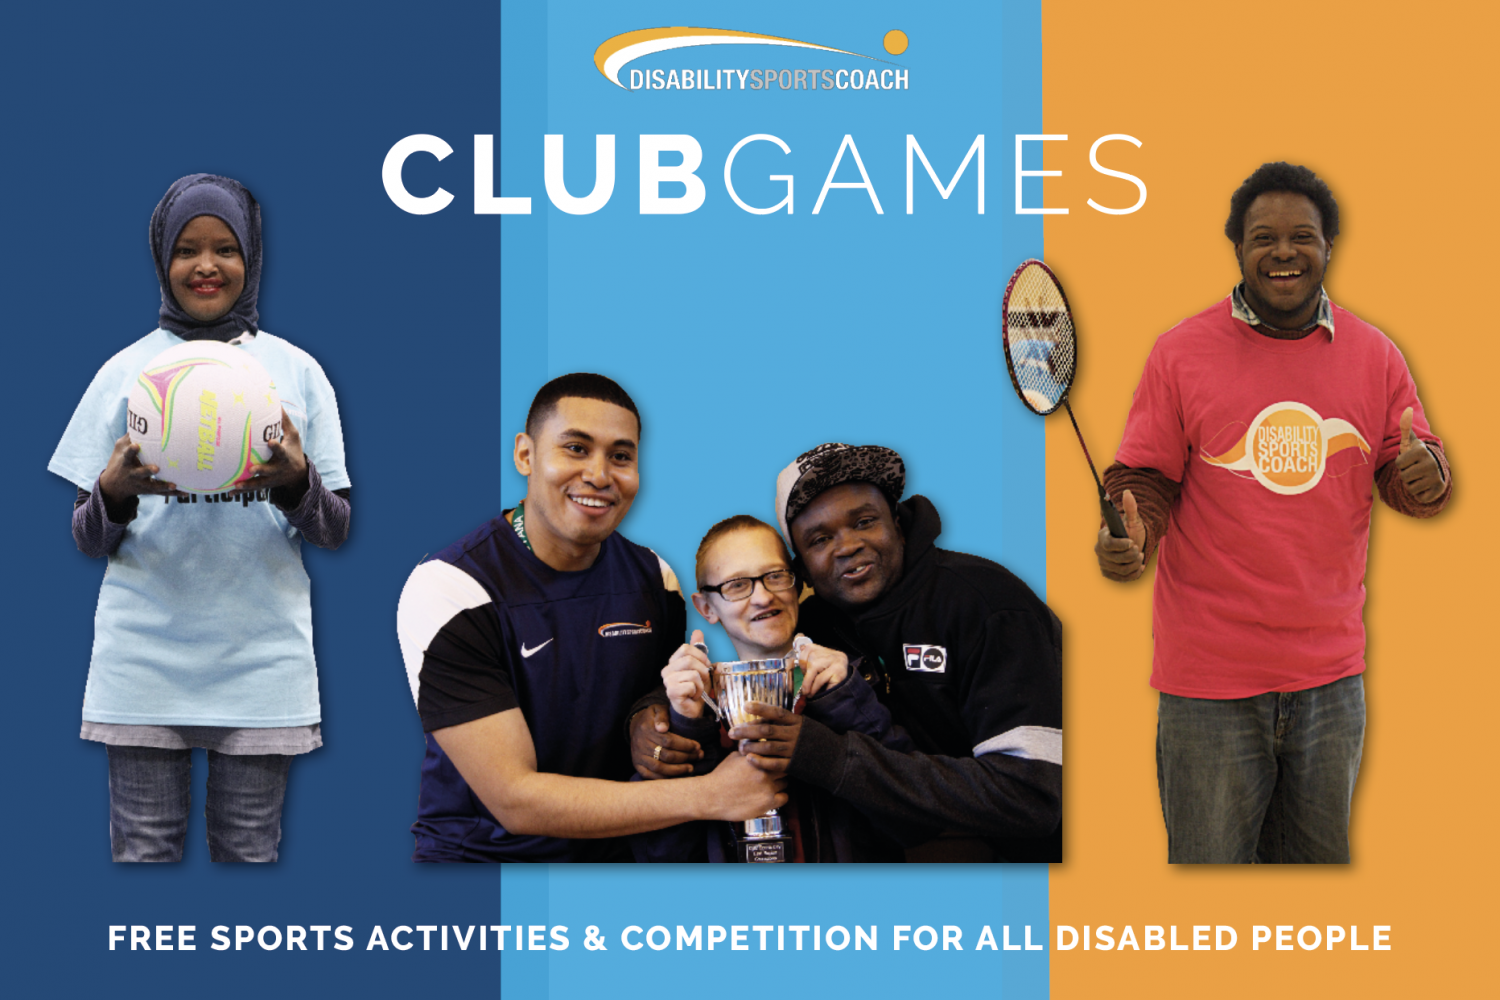 Disability Sports Coach - ClubGames - SouthGames 2019